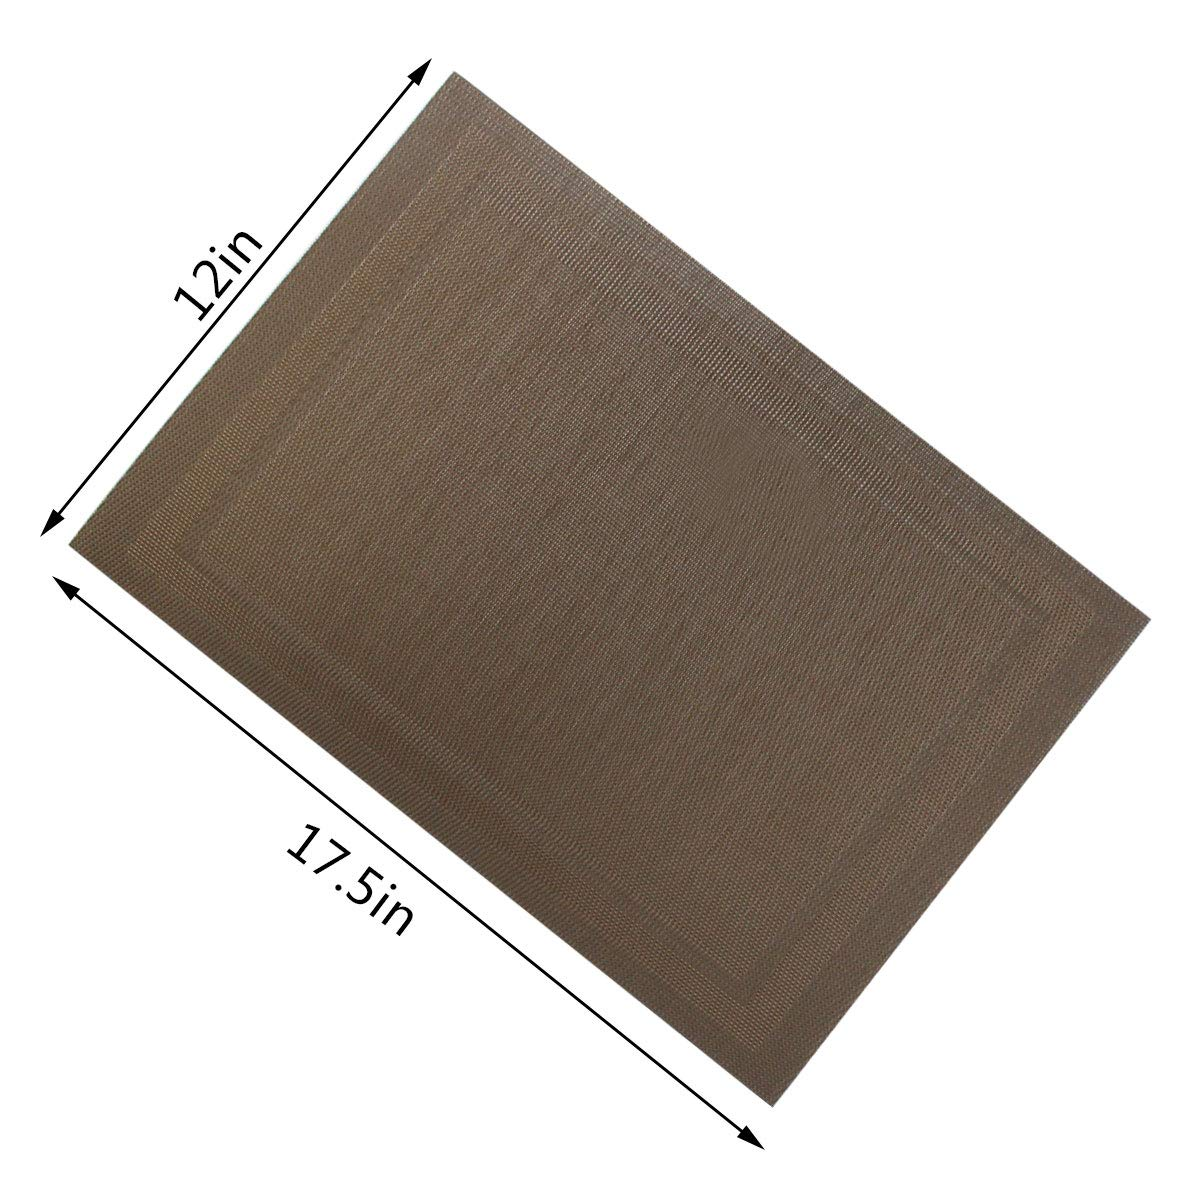 Tongcloud Washable Placemats Braided Mat Stain Resistant Anti-Skid Table Mats Vinyl Mats for Kitchen, Hotel, Restaurant, Grey and Brown Set of 8